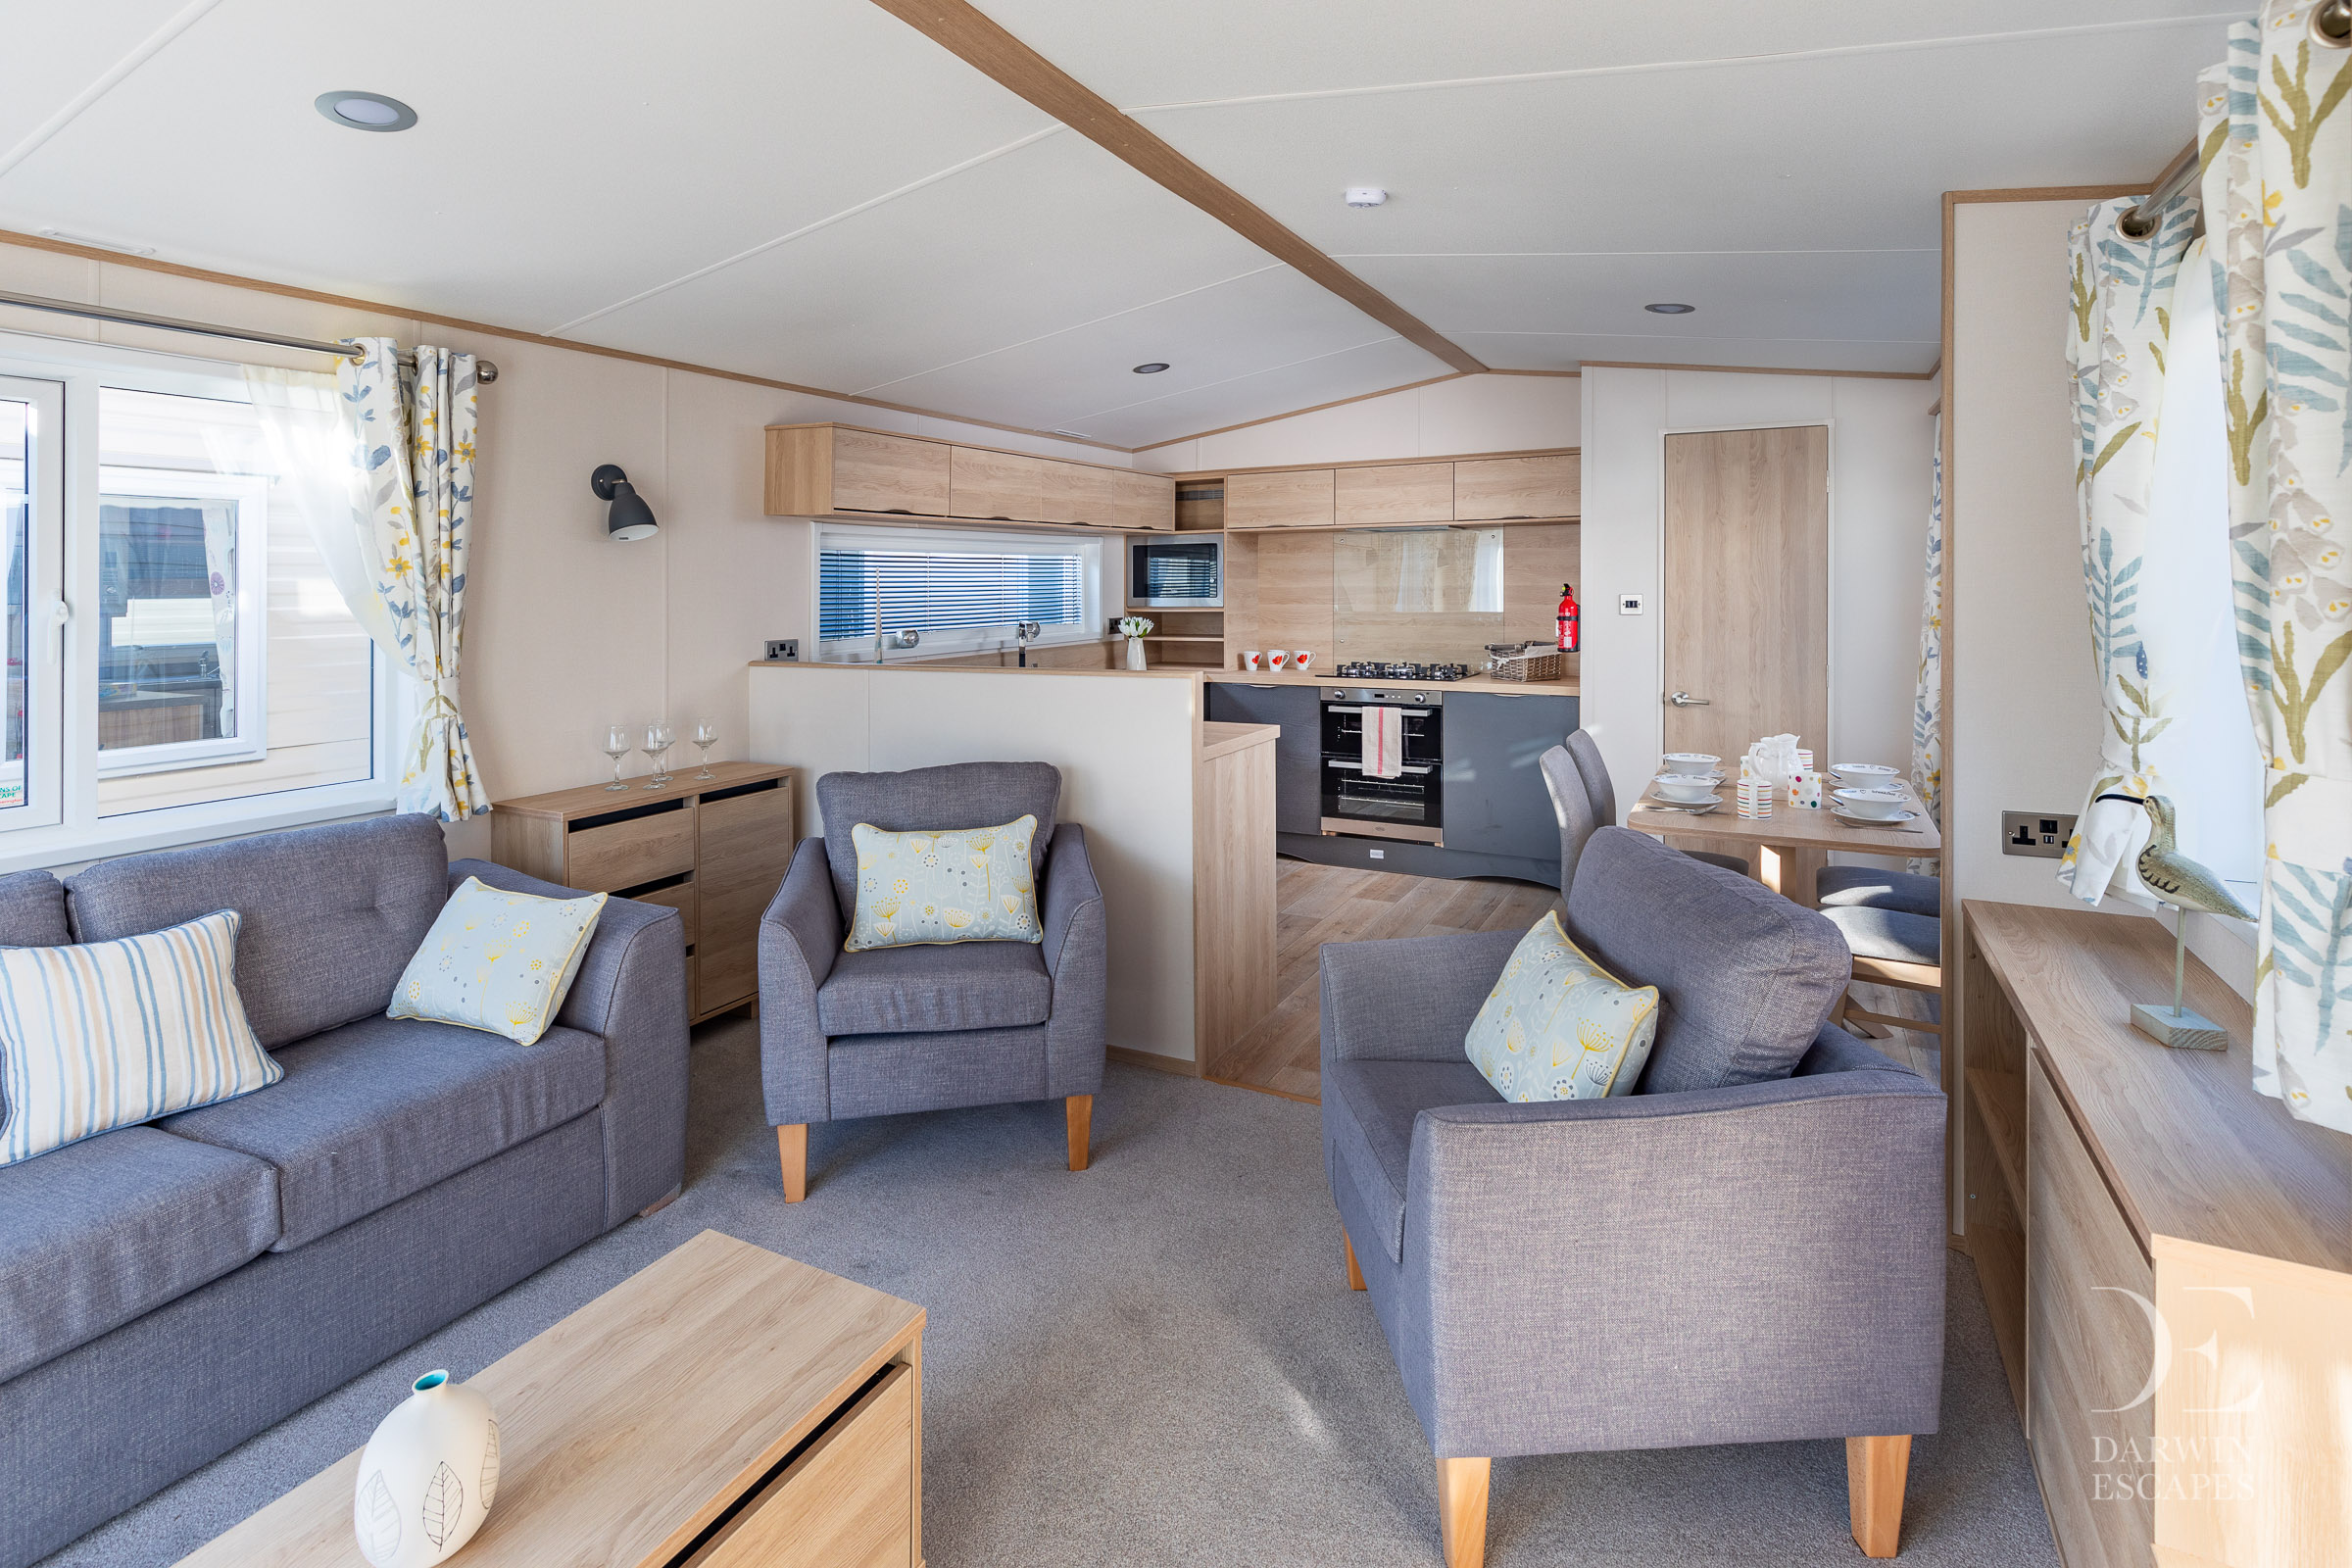 Interior shot of the open plan living area in the ABI Langdale